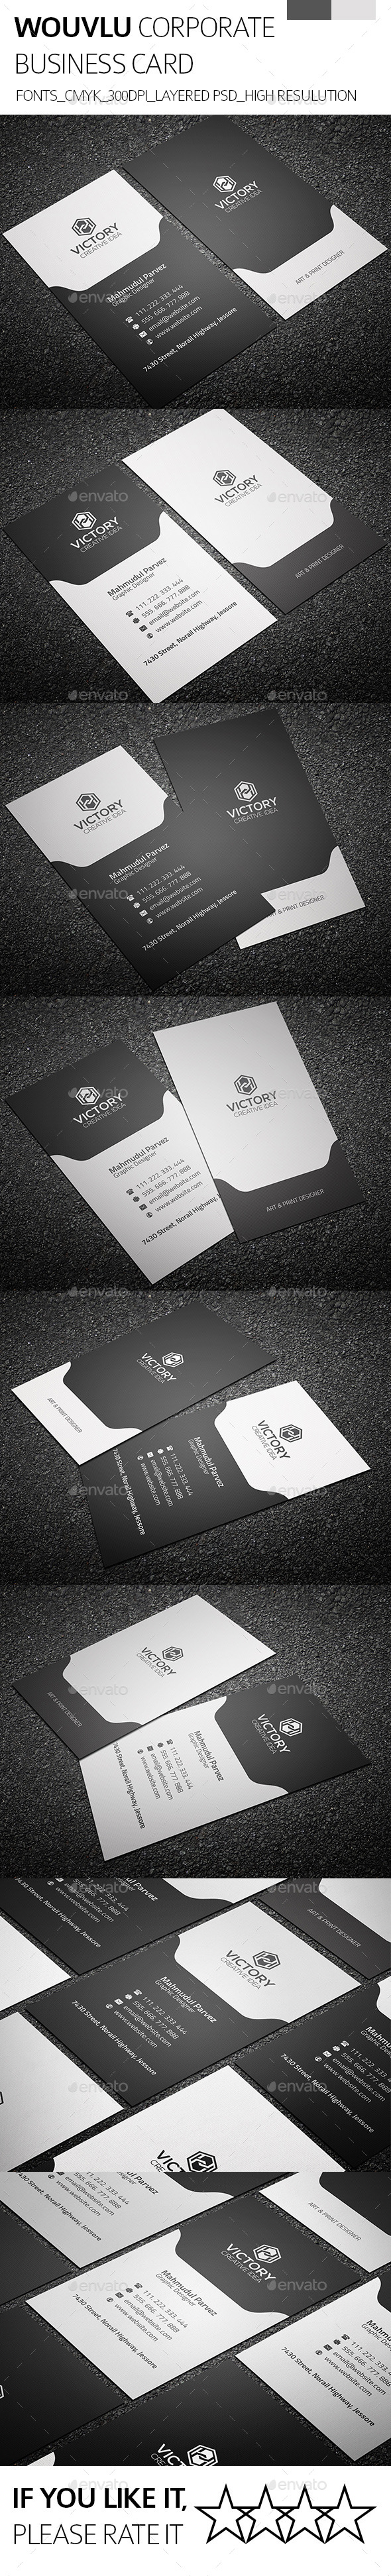 Wouvlu & Corporate Business Card - Corporate Business Cards